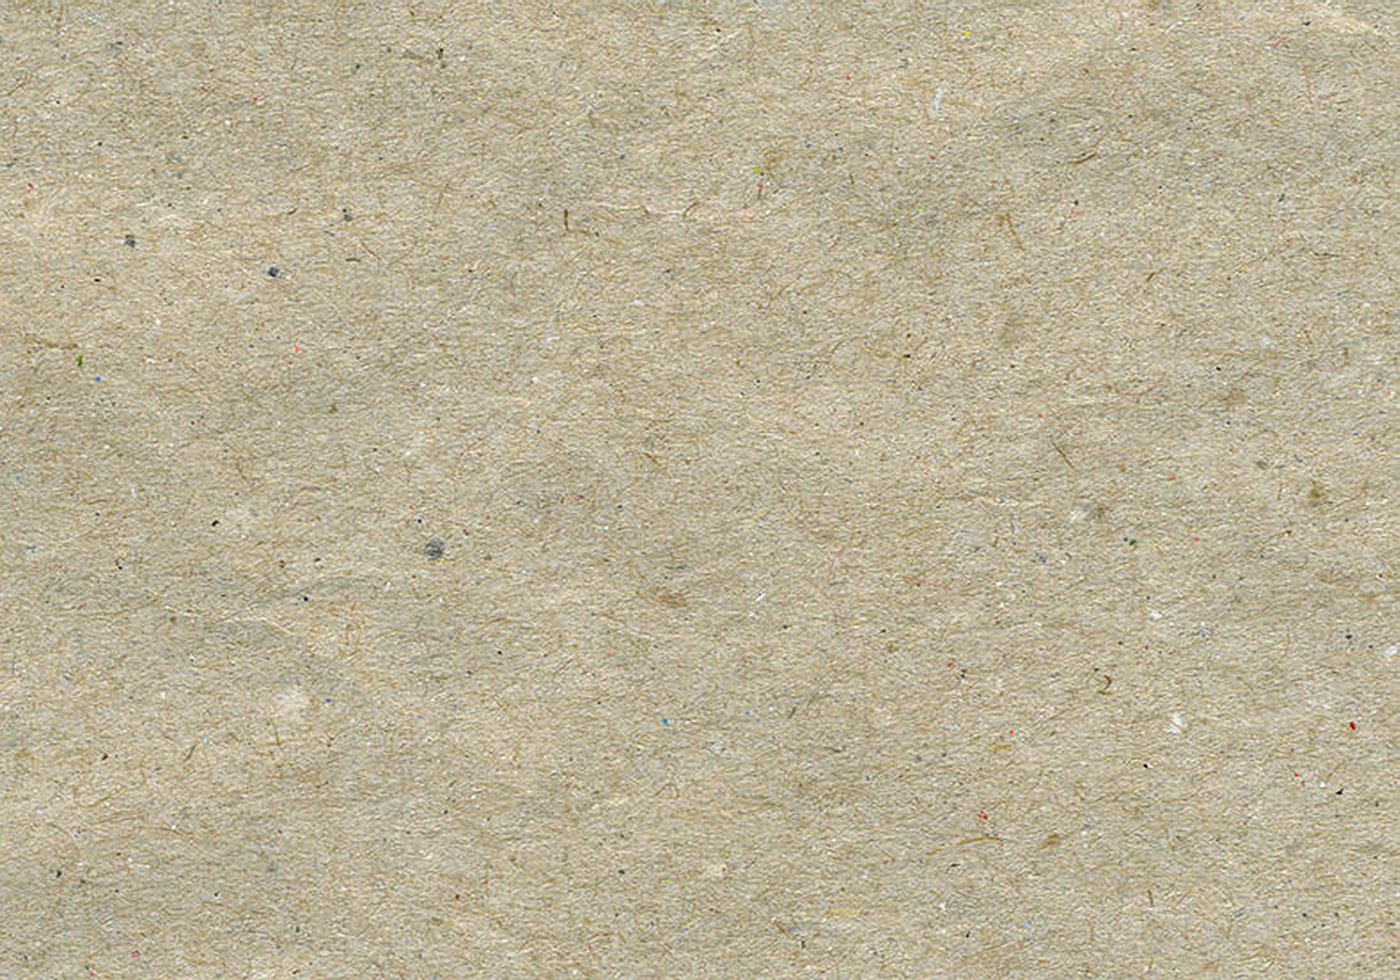 https://static.brusheezy.com/system/resources/previews/000/048/606/original/coarse-hairy-fibrous-brown-paper-texture-photoshop-textures.jpg